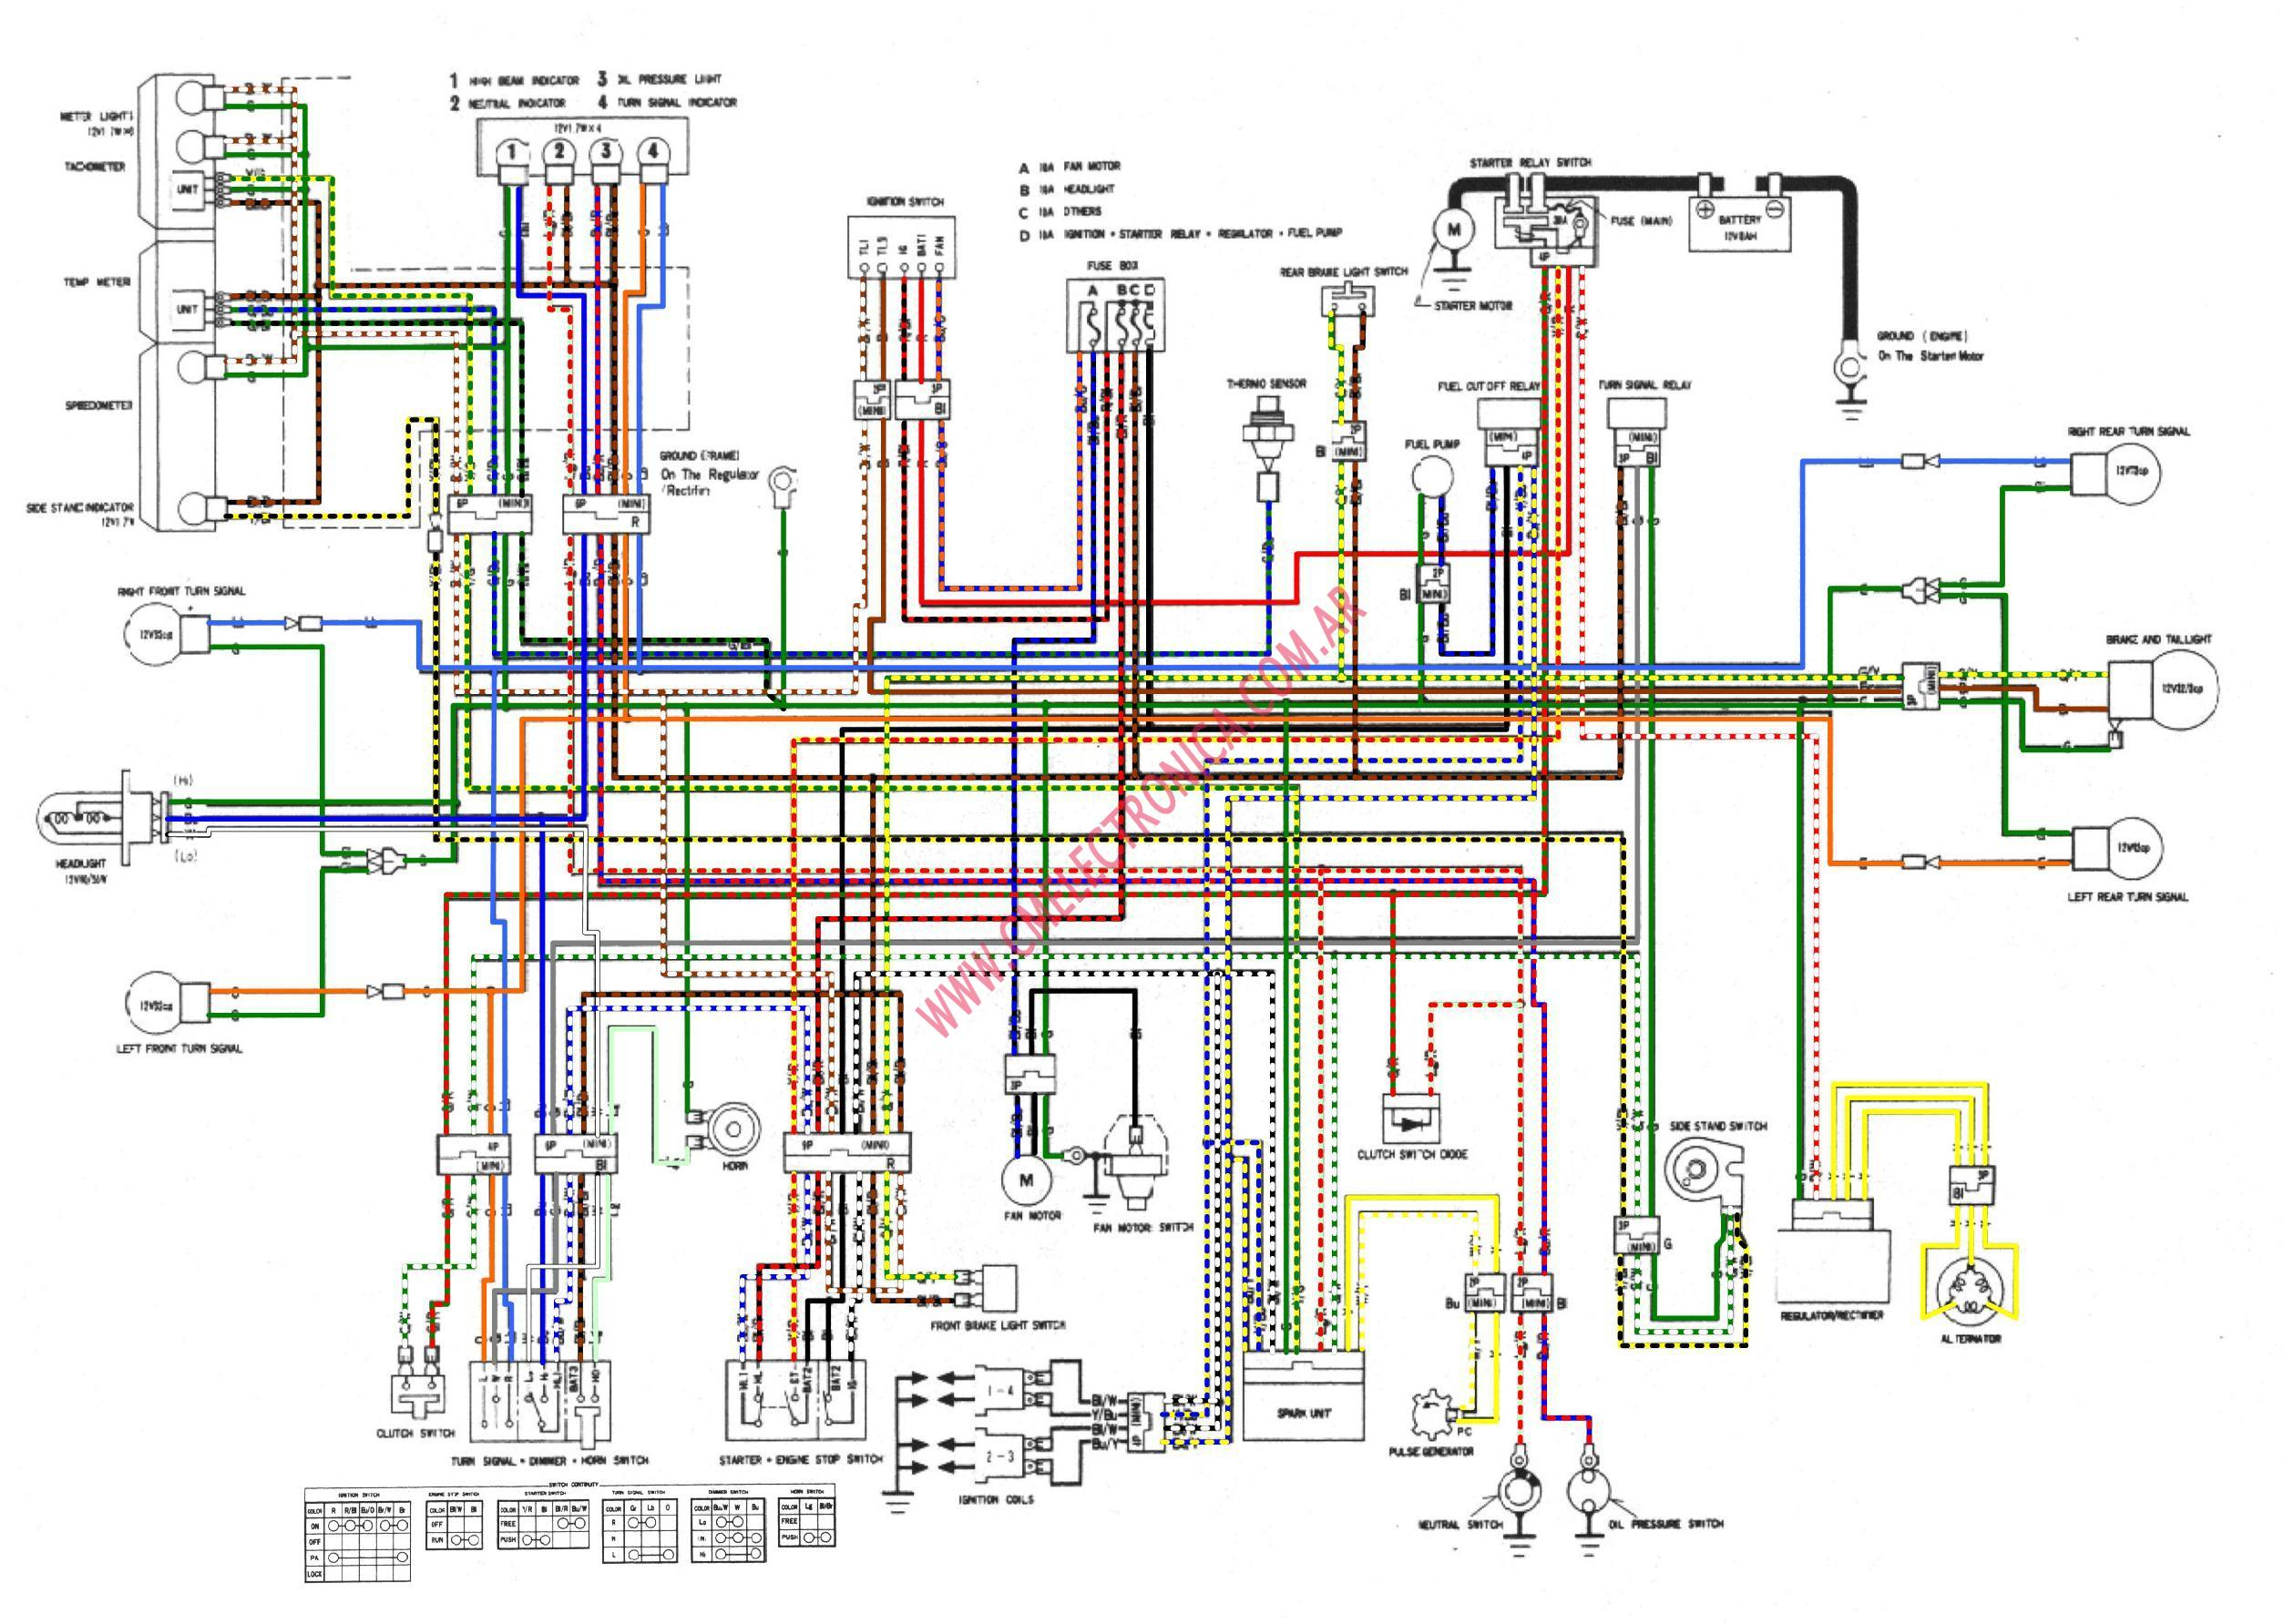 suzuki cdi wiring diagram suzuki wiring diagrams description honda cb1 suzuki cdi wiring diagram